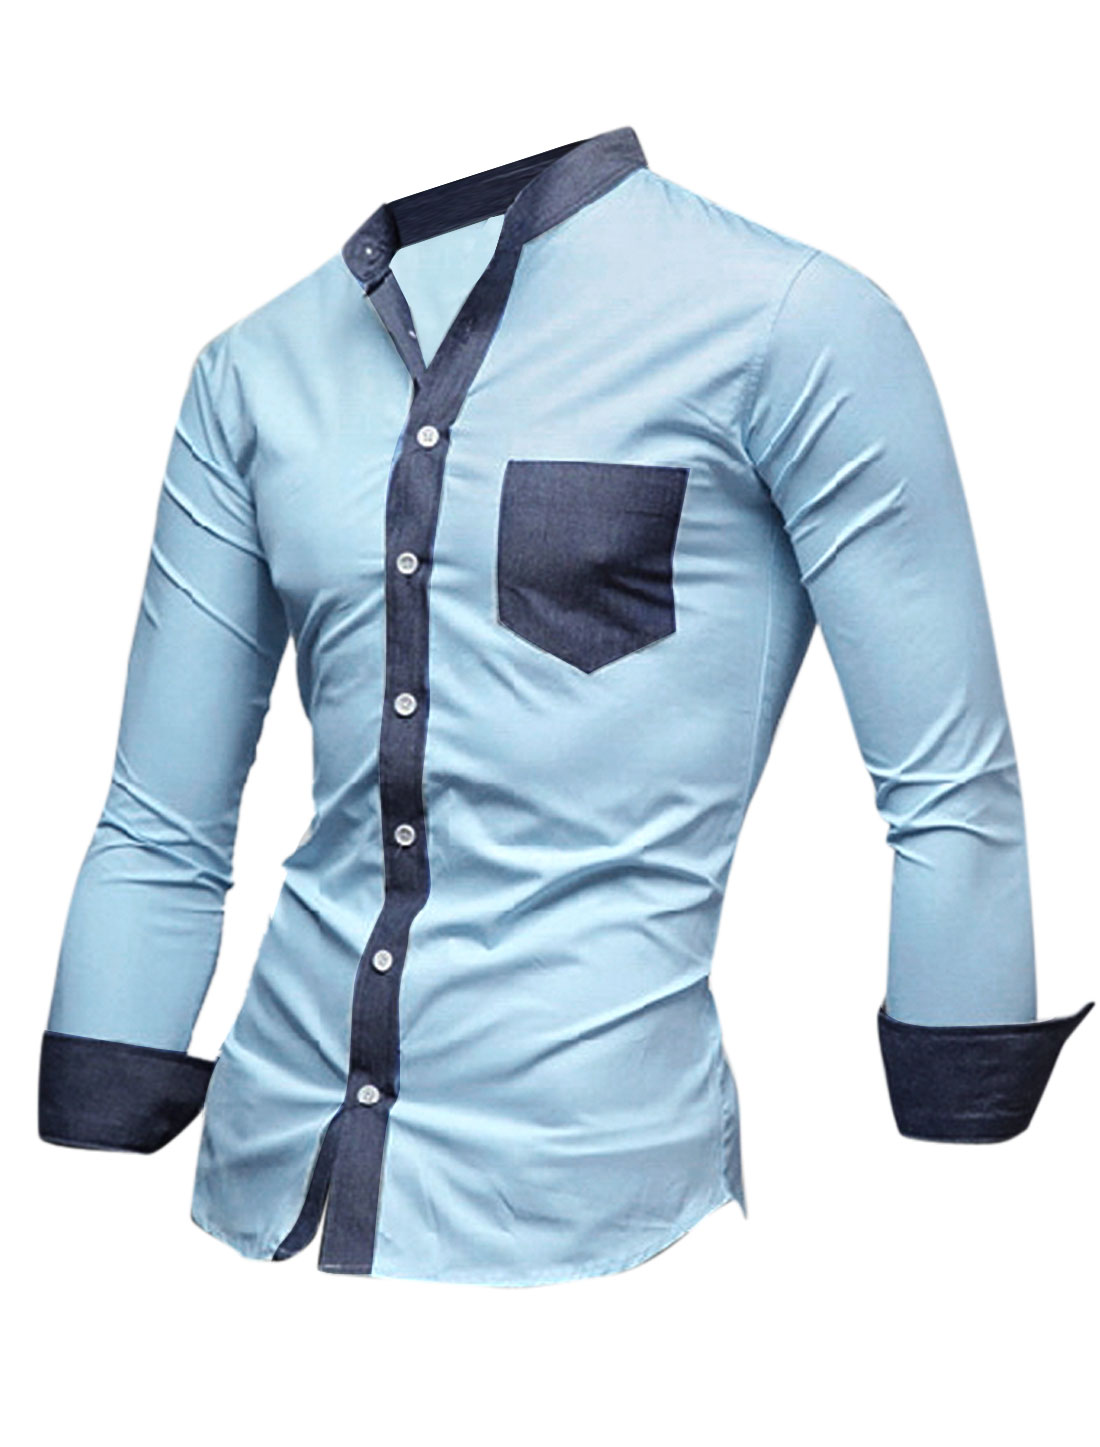 Men Stand Collar Denim Panel Contrast Chest Pocket Casual Shirt Light Blue M